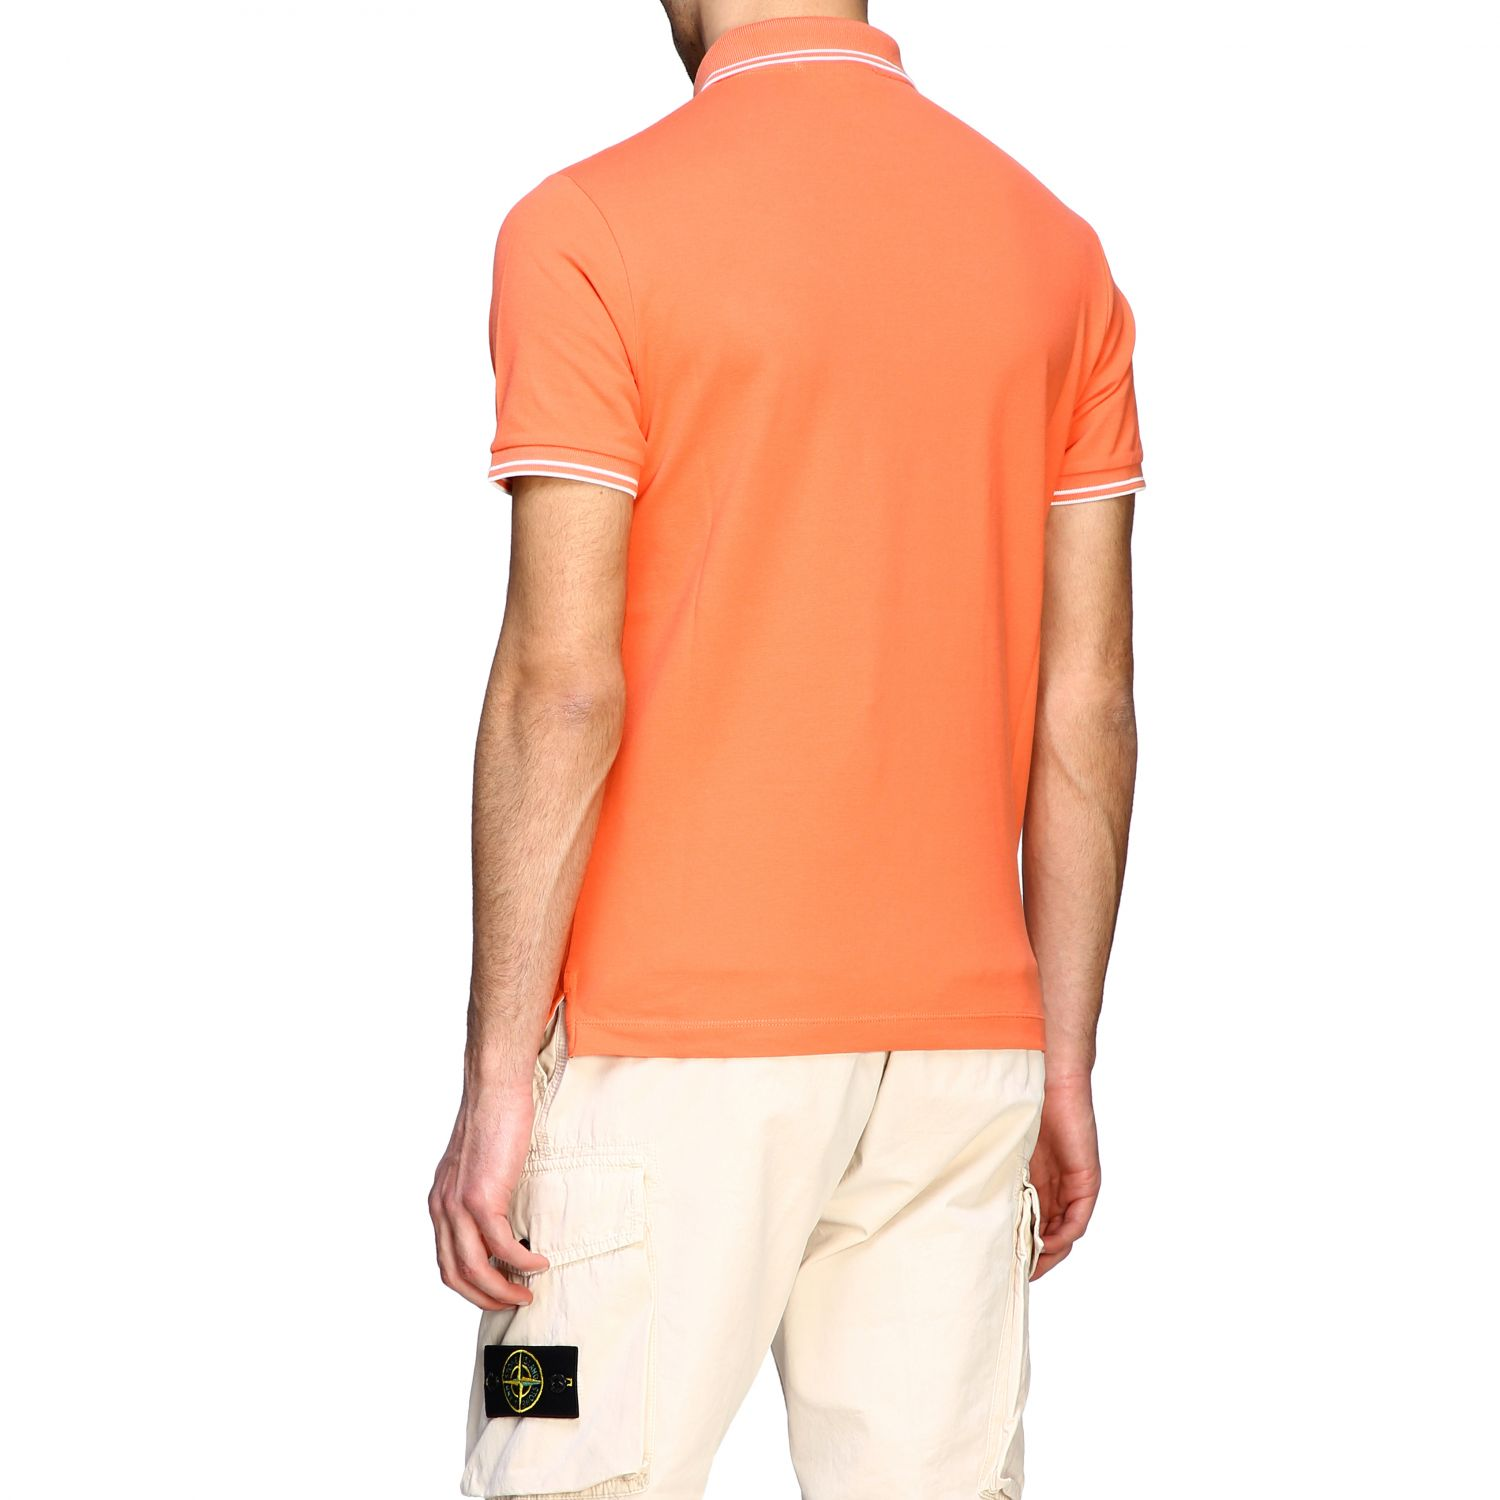 T-shirt men Stone Island orange 3